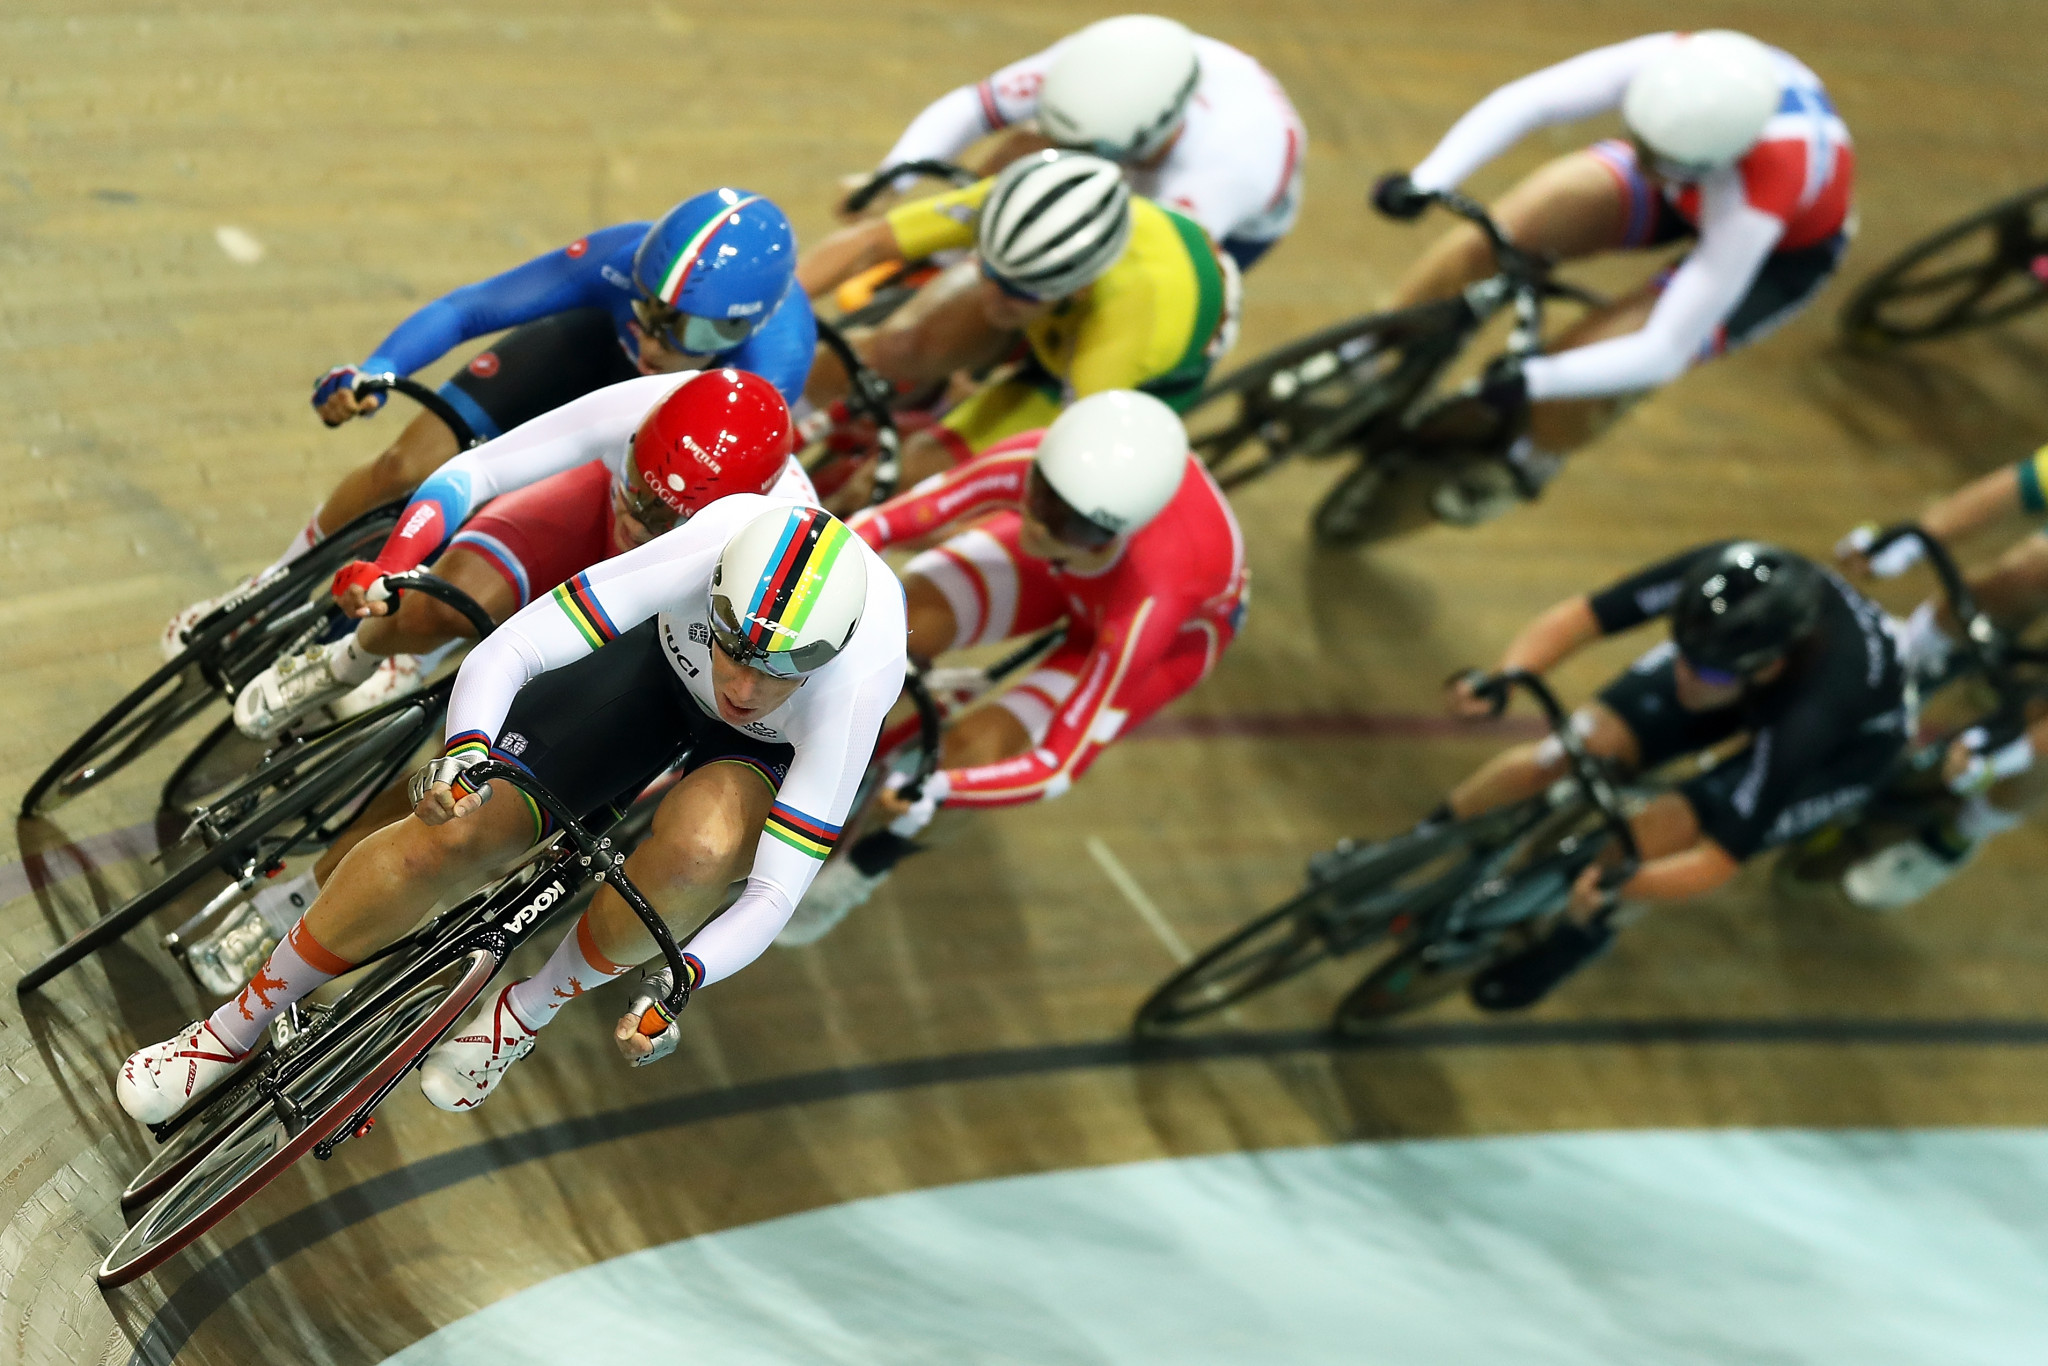 Multiple world champion Wild takes omnium gold at UCI Track World Cup in France